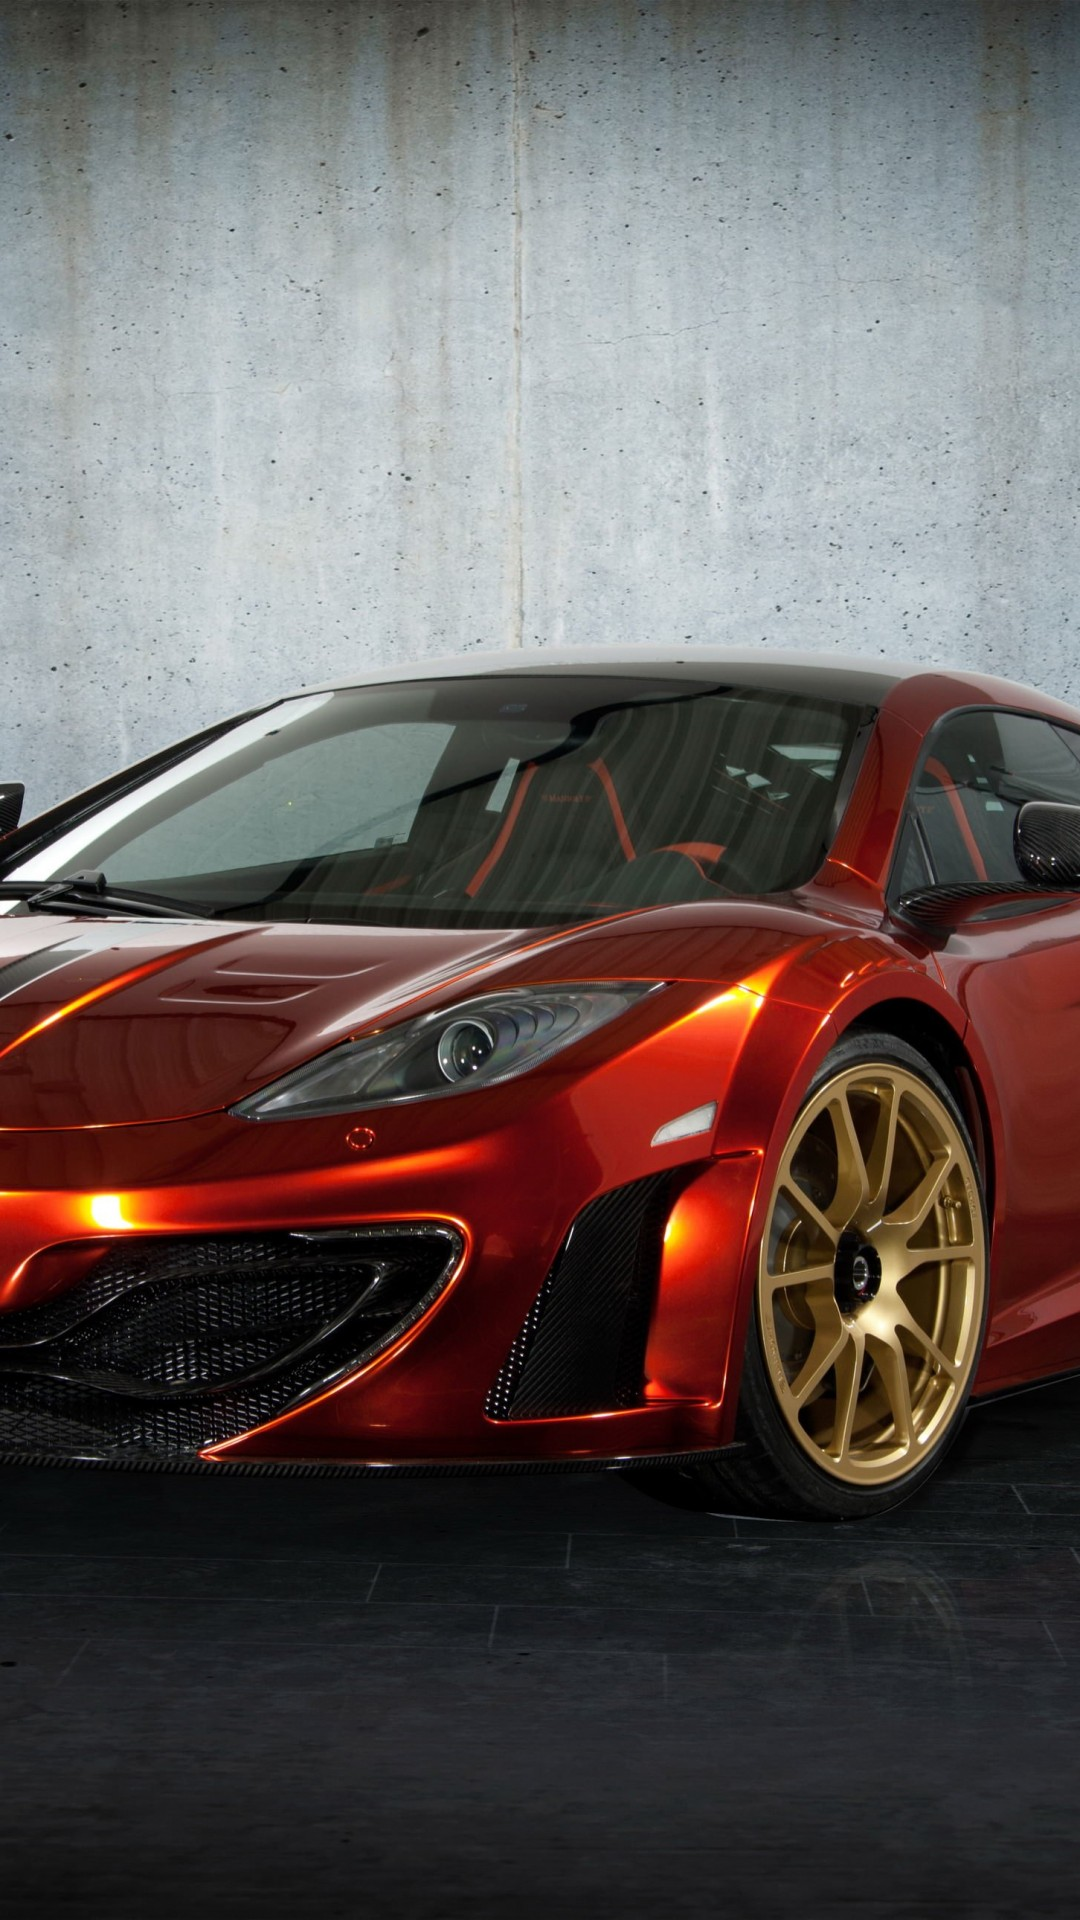 McLaren MP4-12Cf By Mansory Wallpaper for SONY Xperia Z3